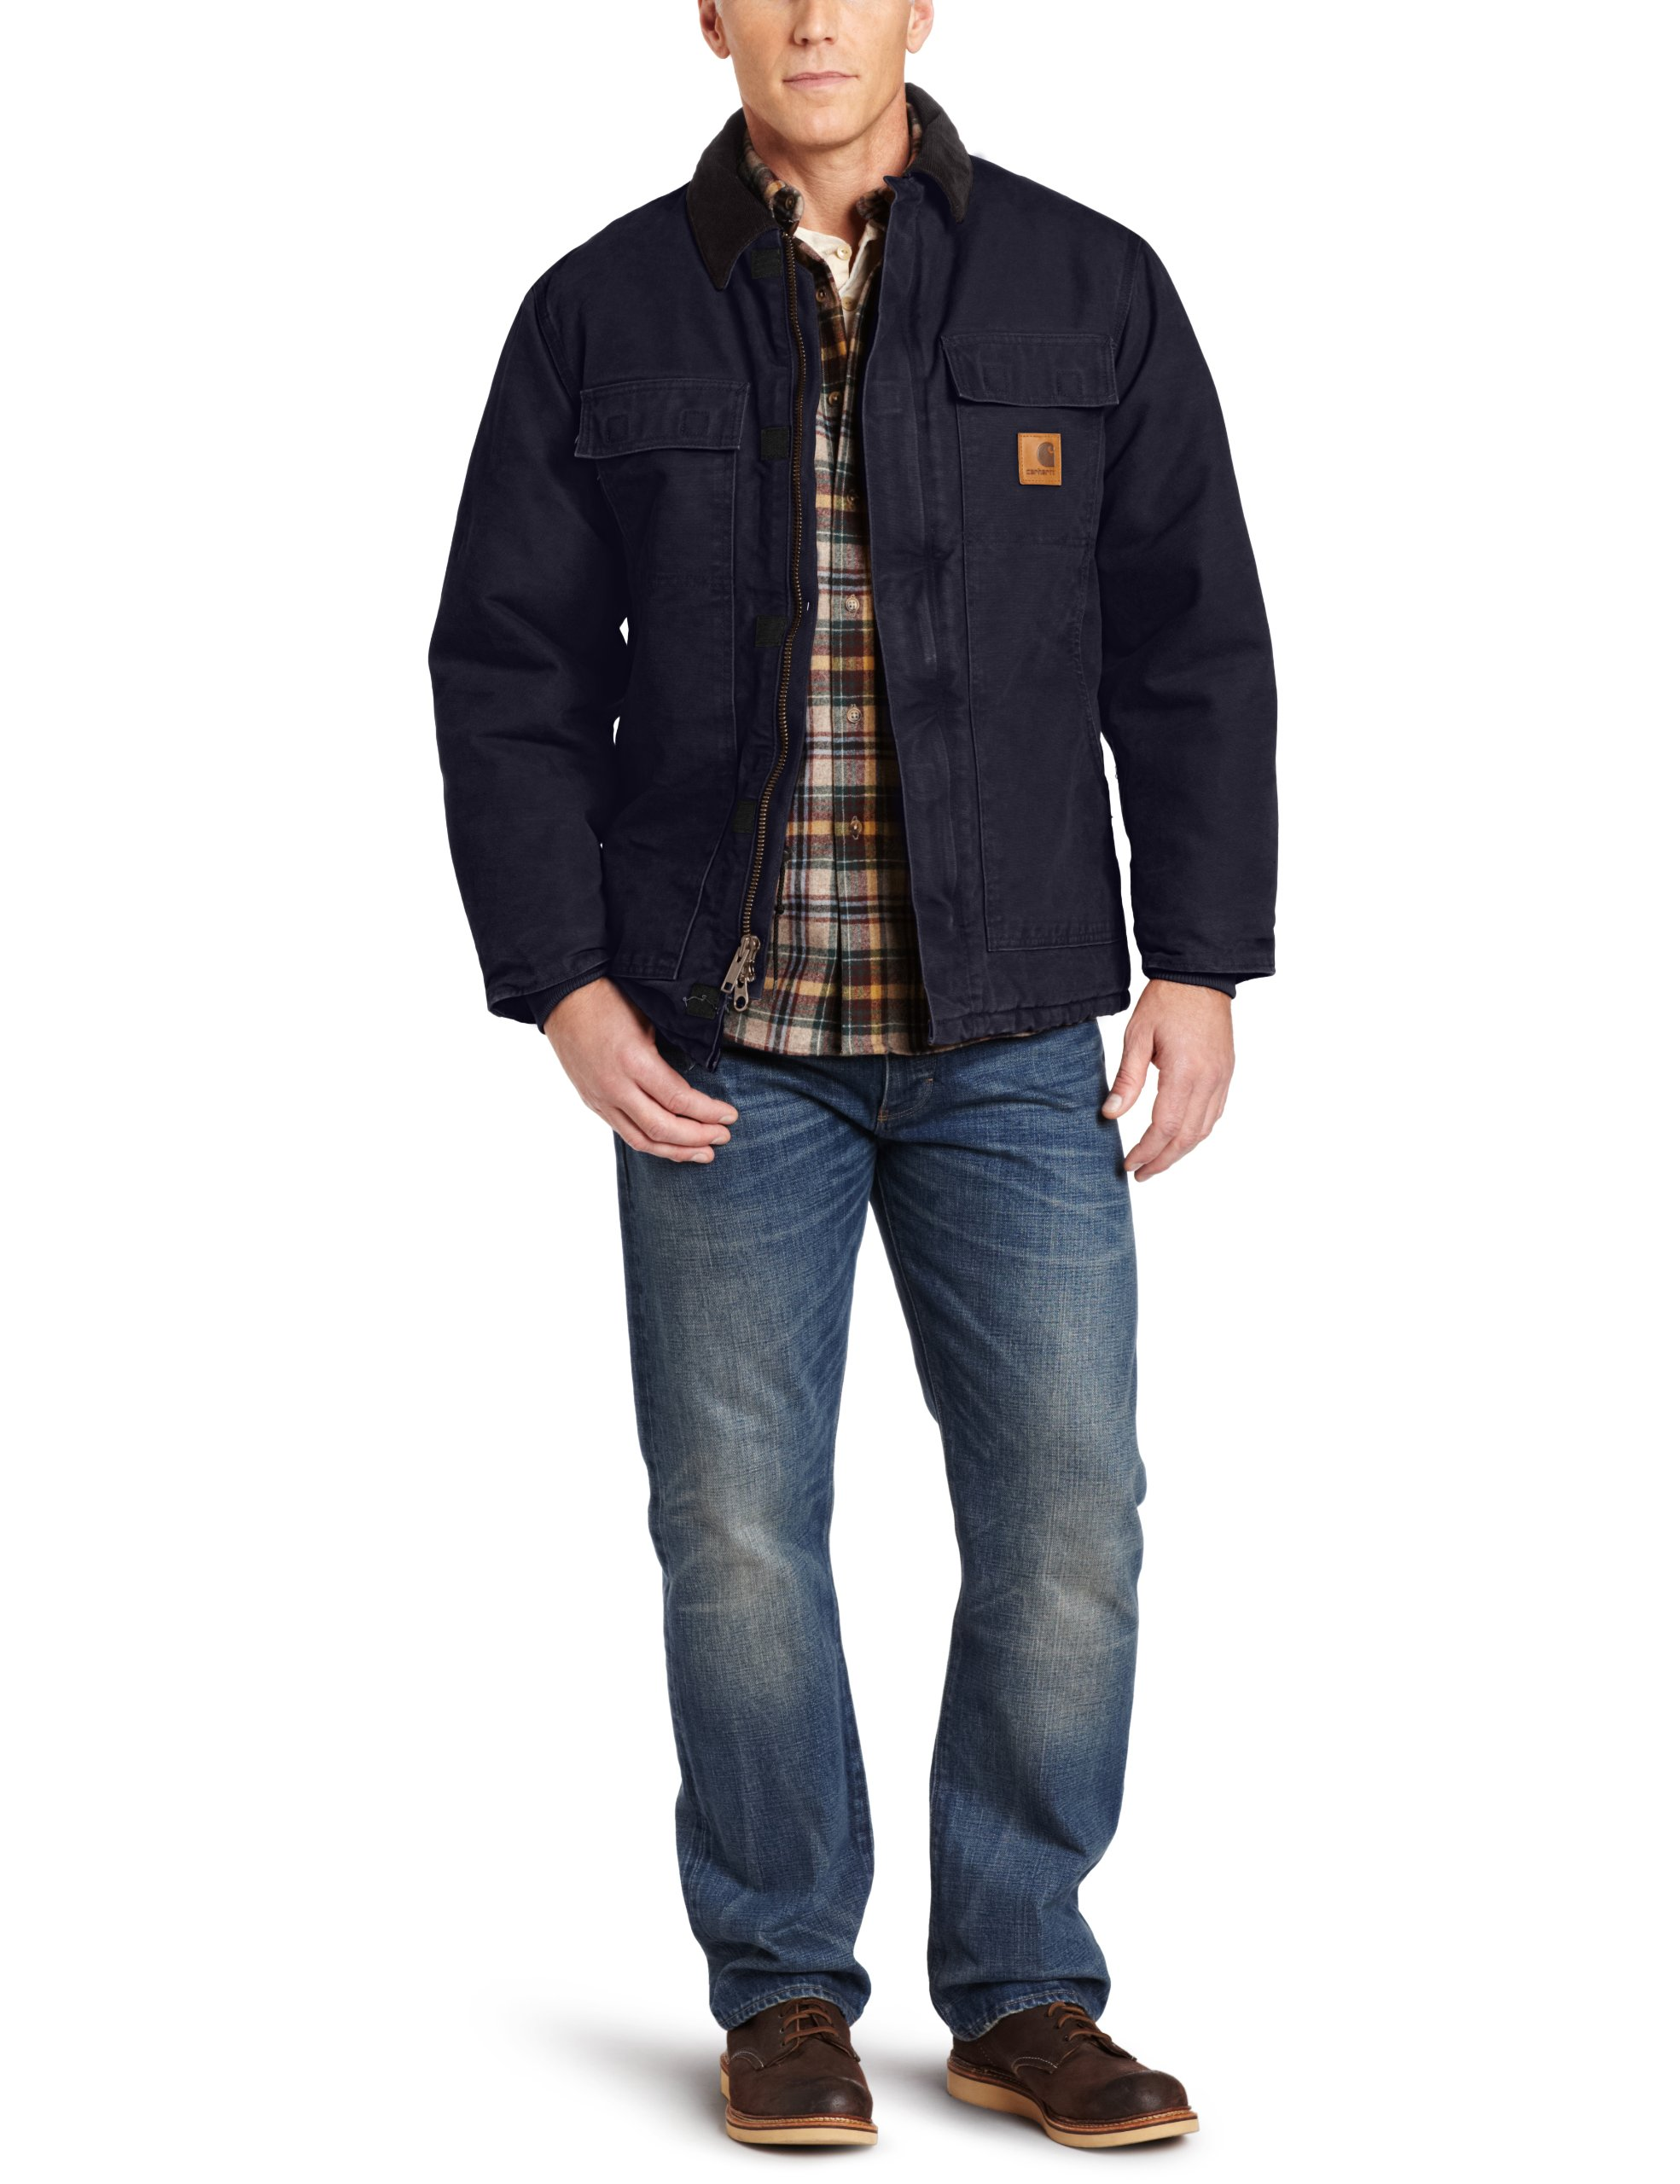 Carhartt Men's Arctic Quilt Lined Sandstone Traditional Coat C26,Midnight,Small by Carhartt (Image #1)